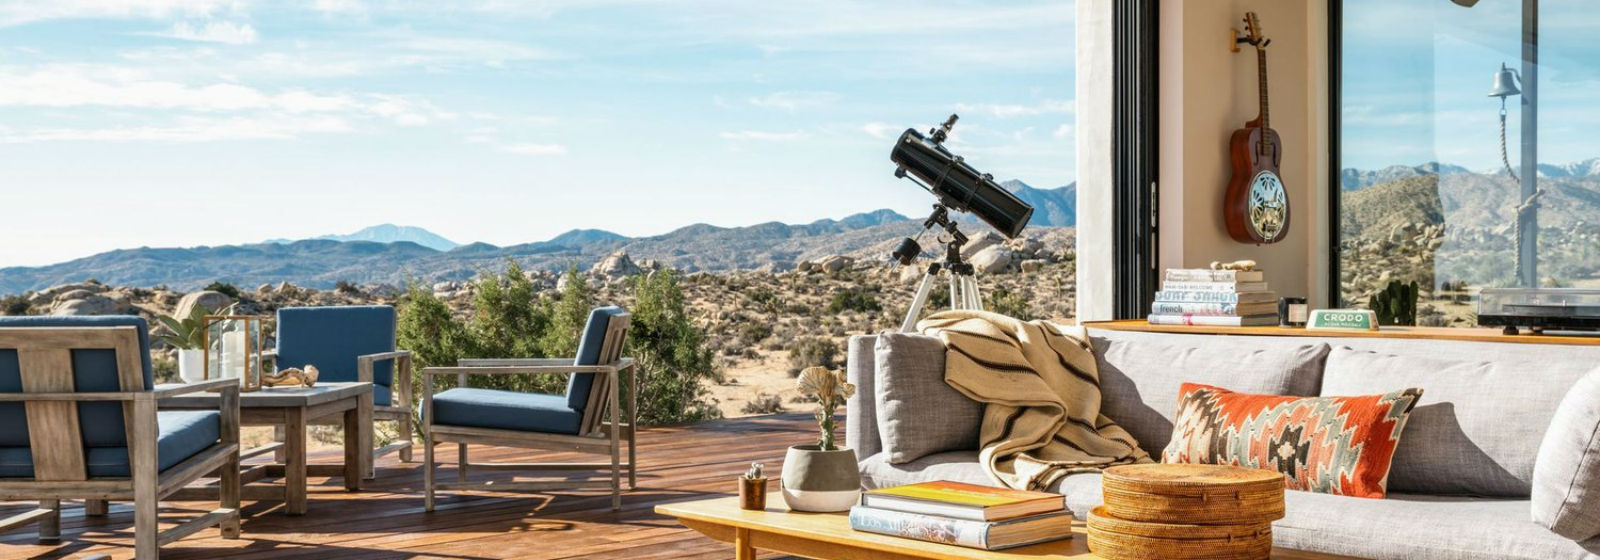 Your Own Private Enclave in the High Desert